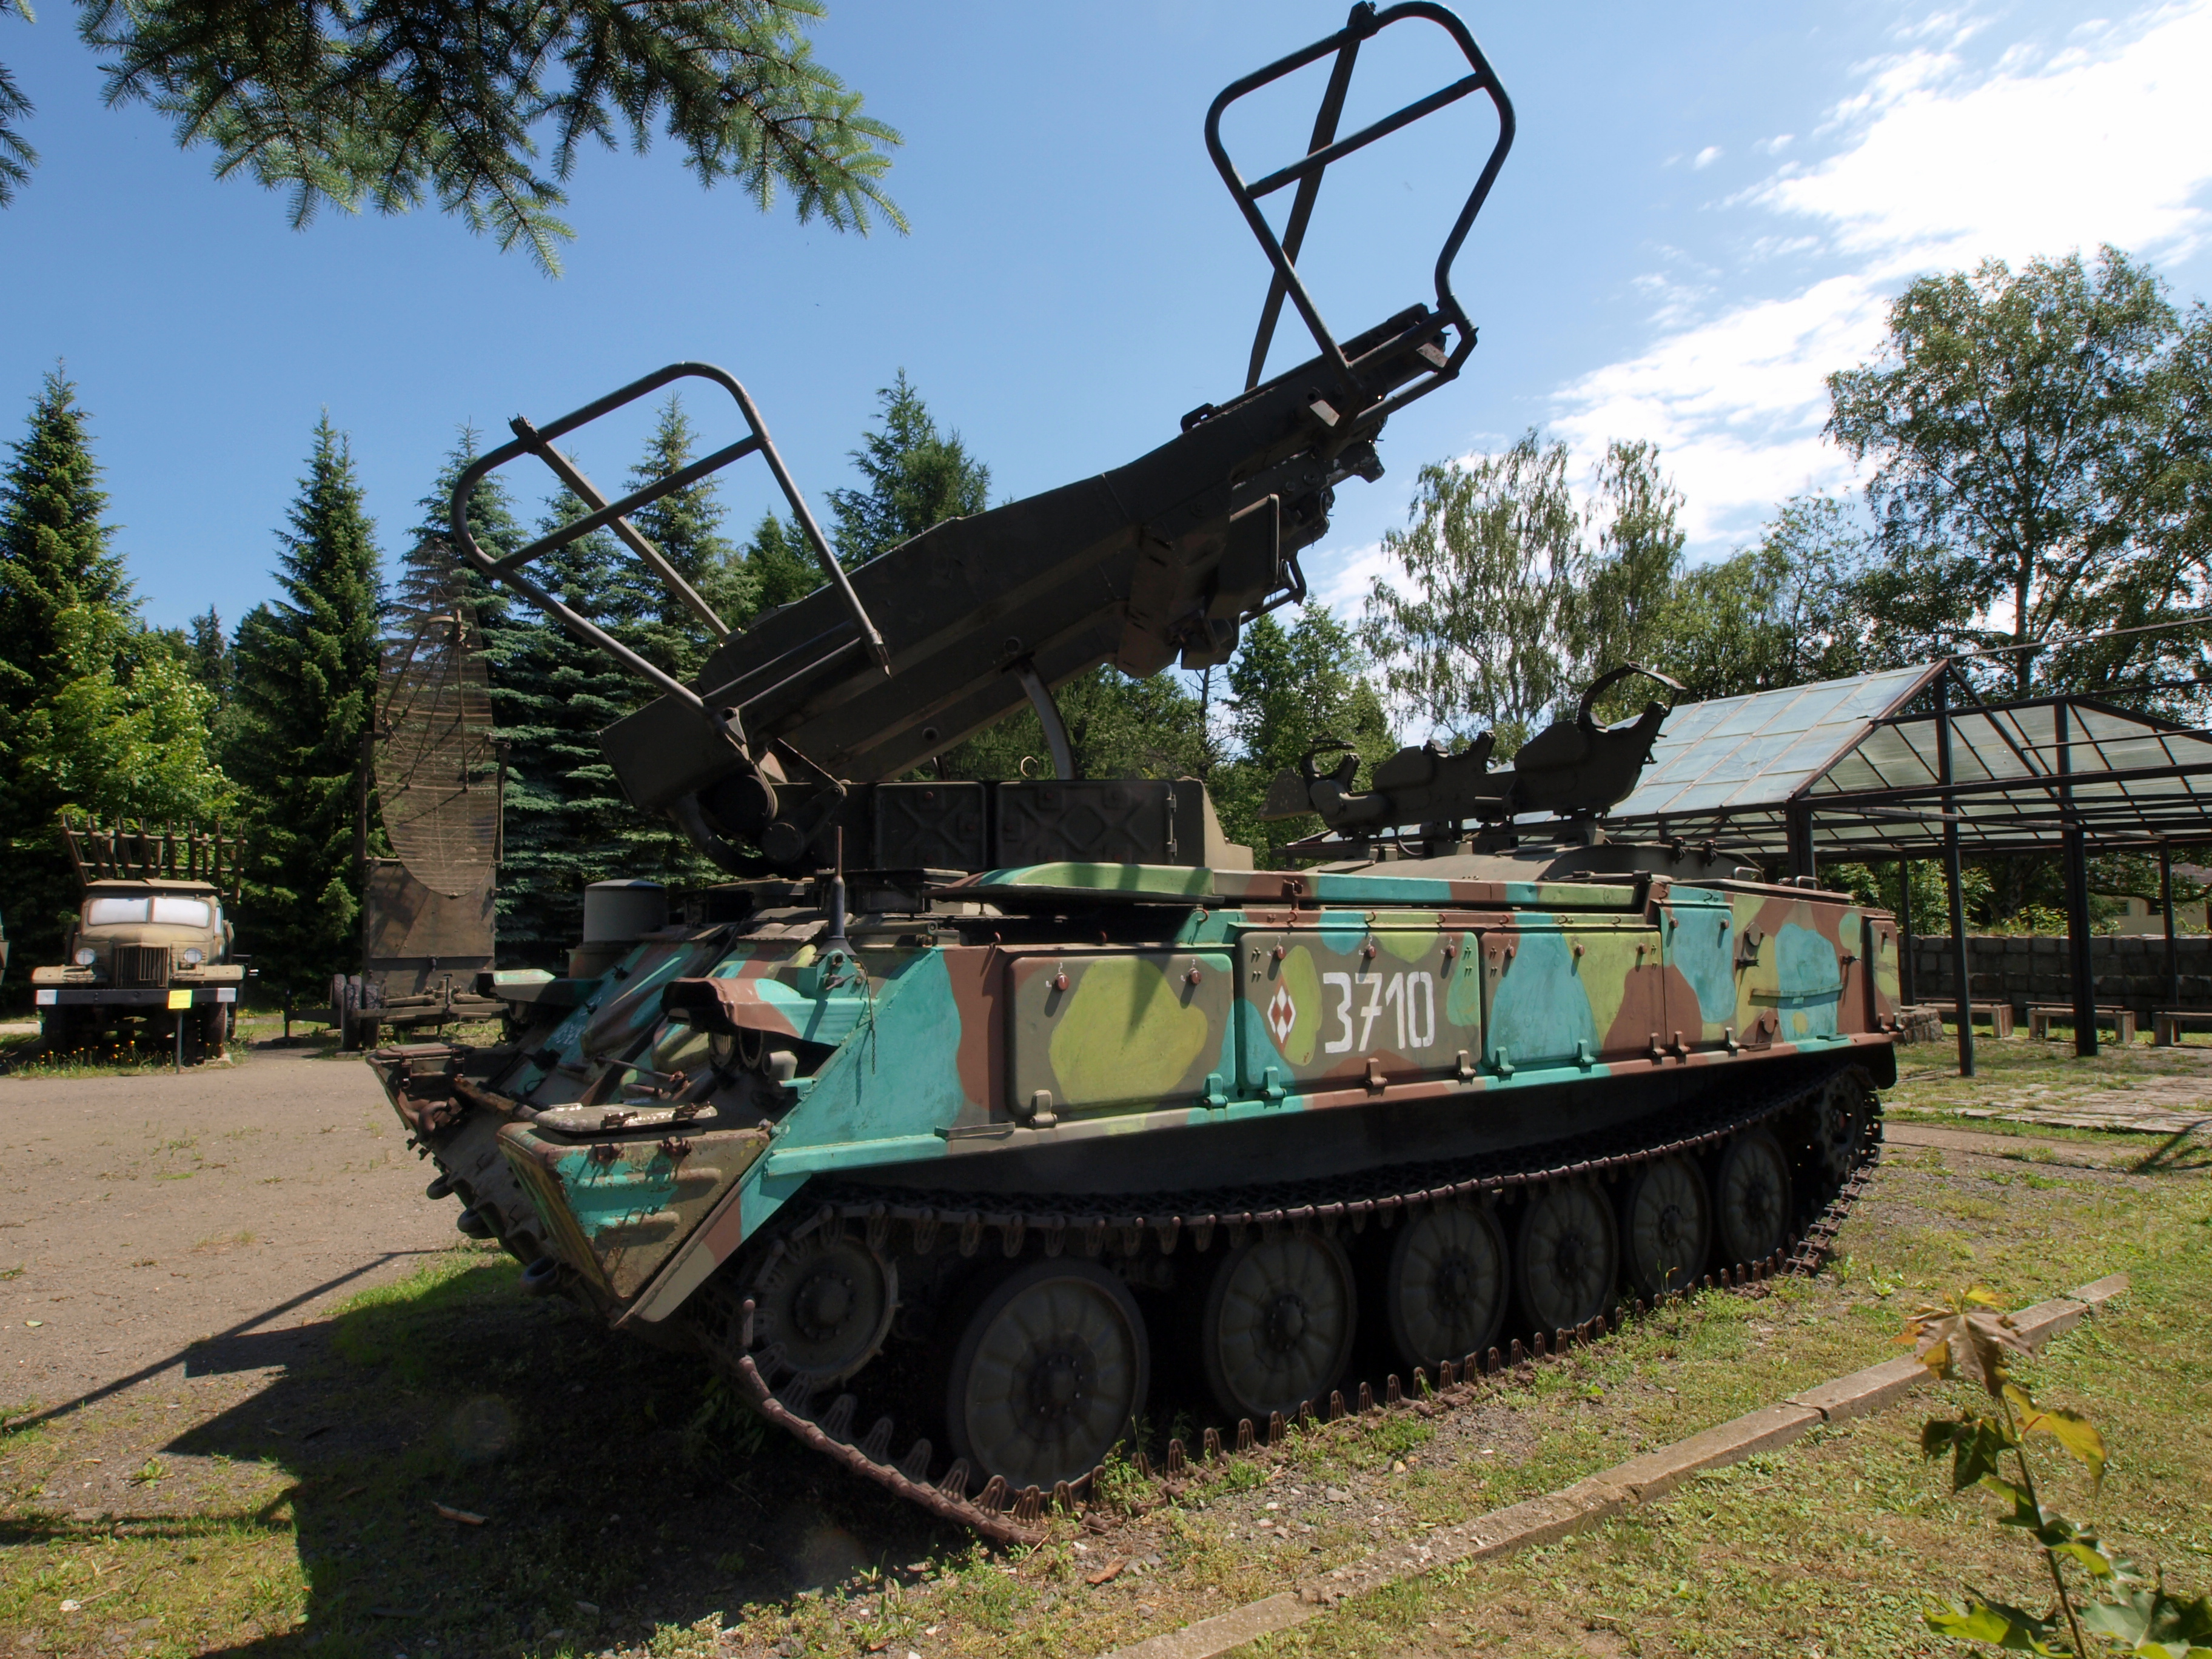 history of kub In 2011 a kub upgraded launcher (named 2k12 kub cz) with three aspide 2000 missiles in launch containers was presented at the international exhibition of defence and security technologies (idet) exposition in brno the modifications were made by retia.